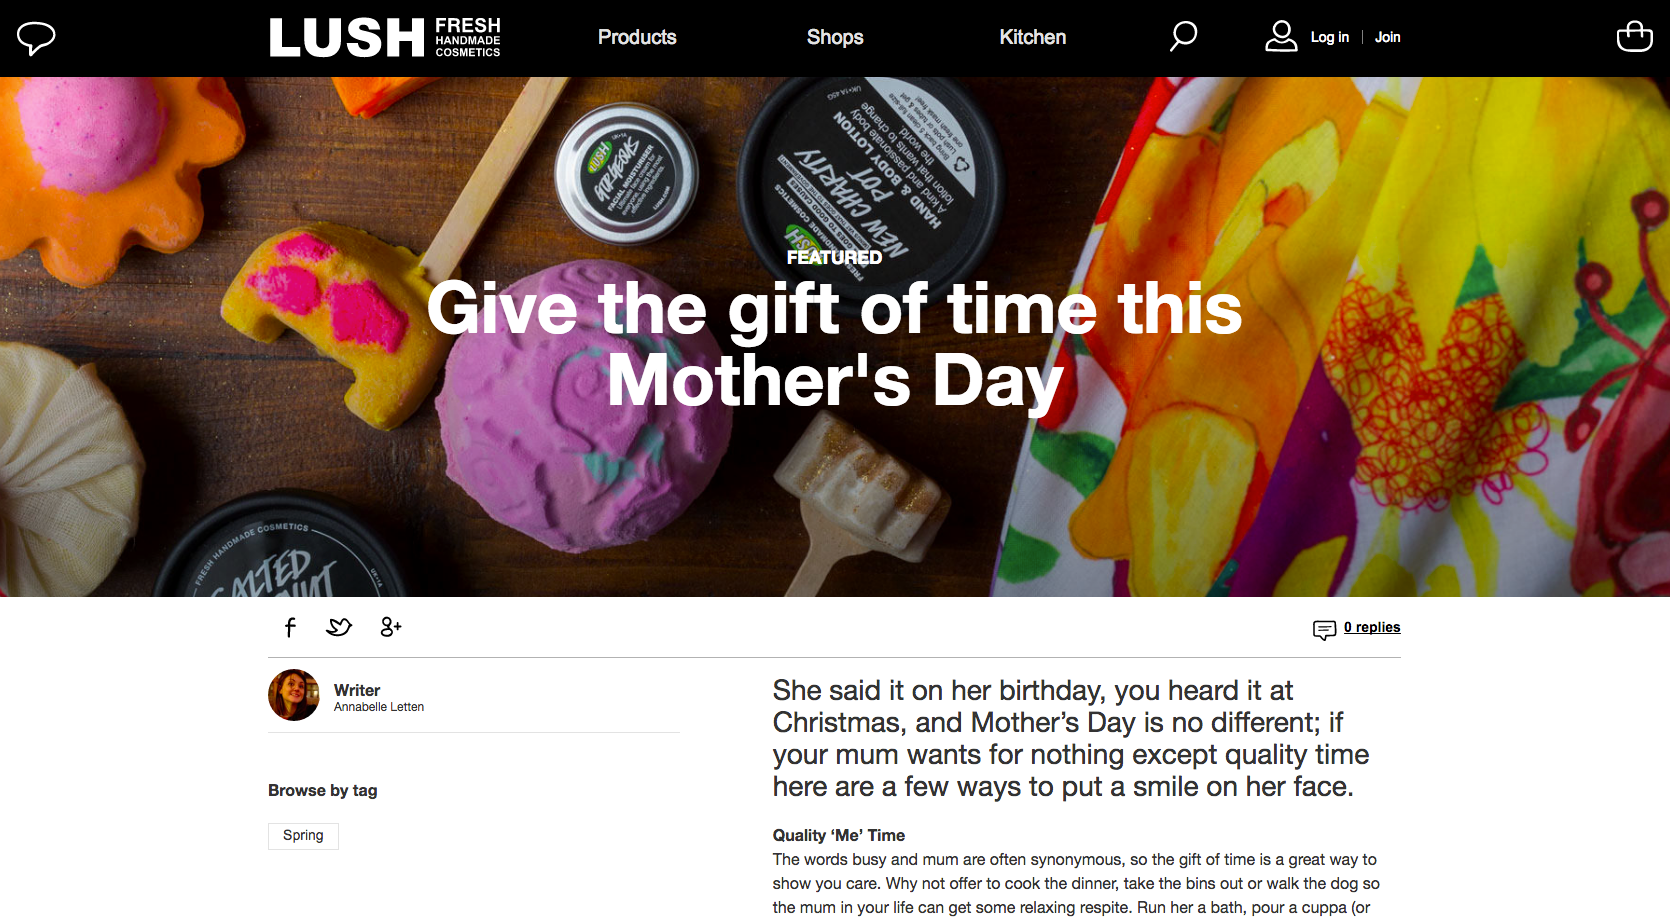 Lush_Mother's Day marketing